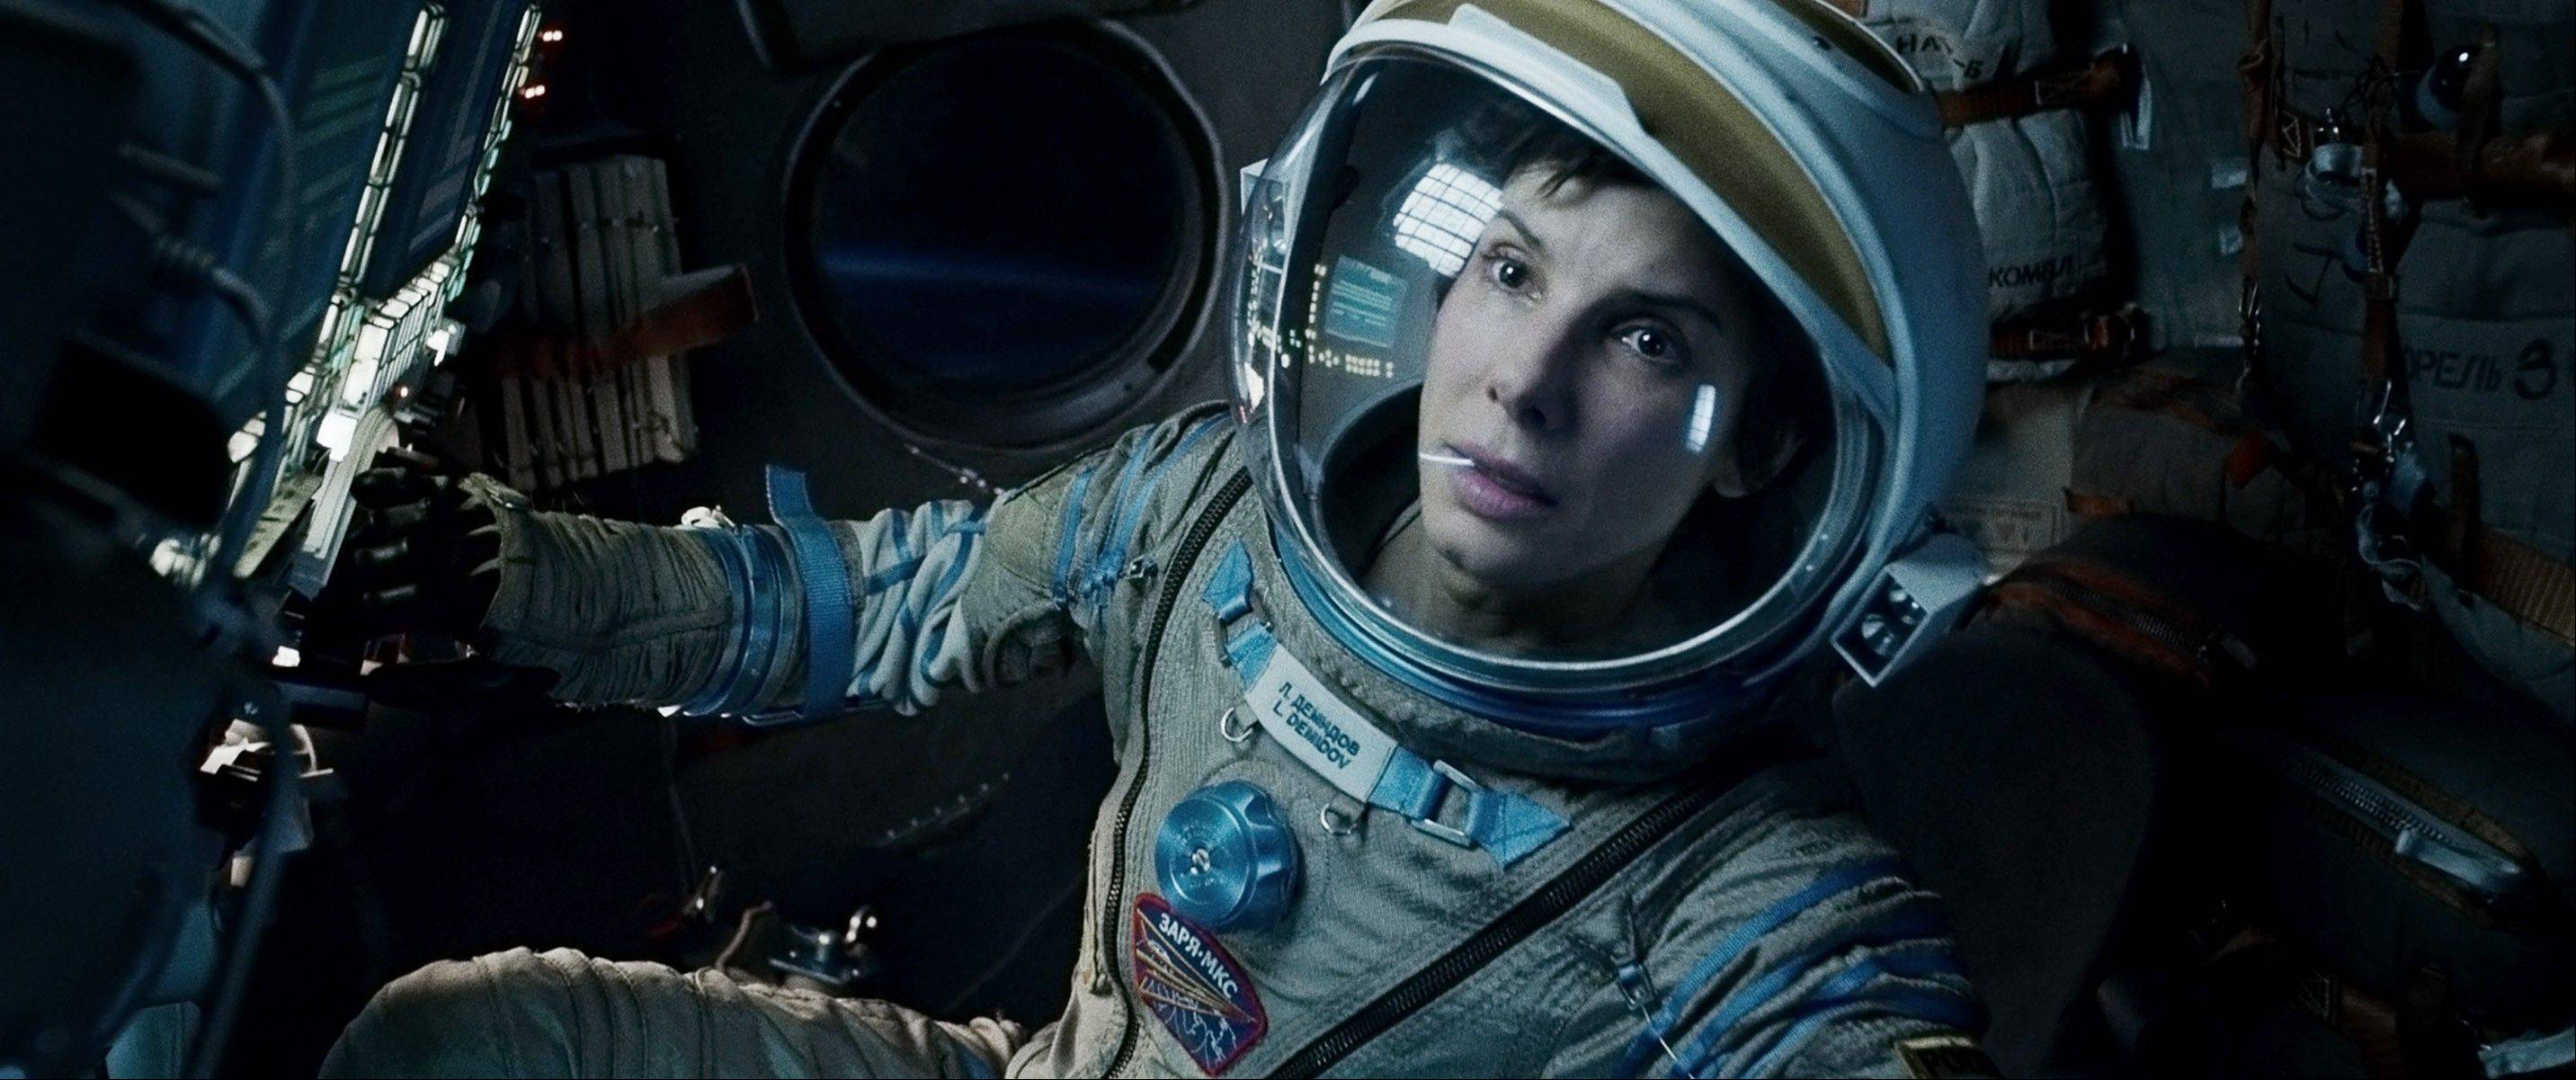 """Gravity,"" starring Sandra Bullock and George Clooney, landed the top spot at the box office for the week in a row."